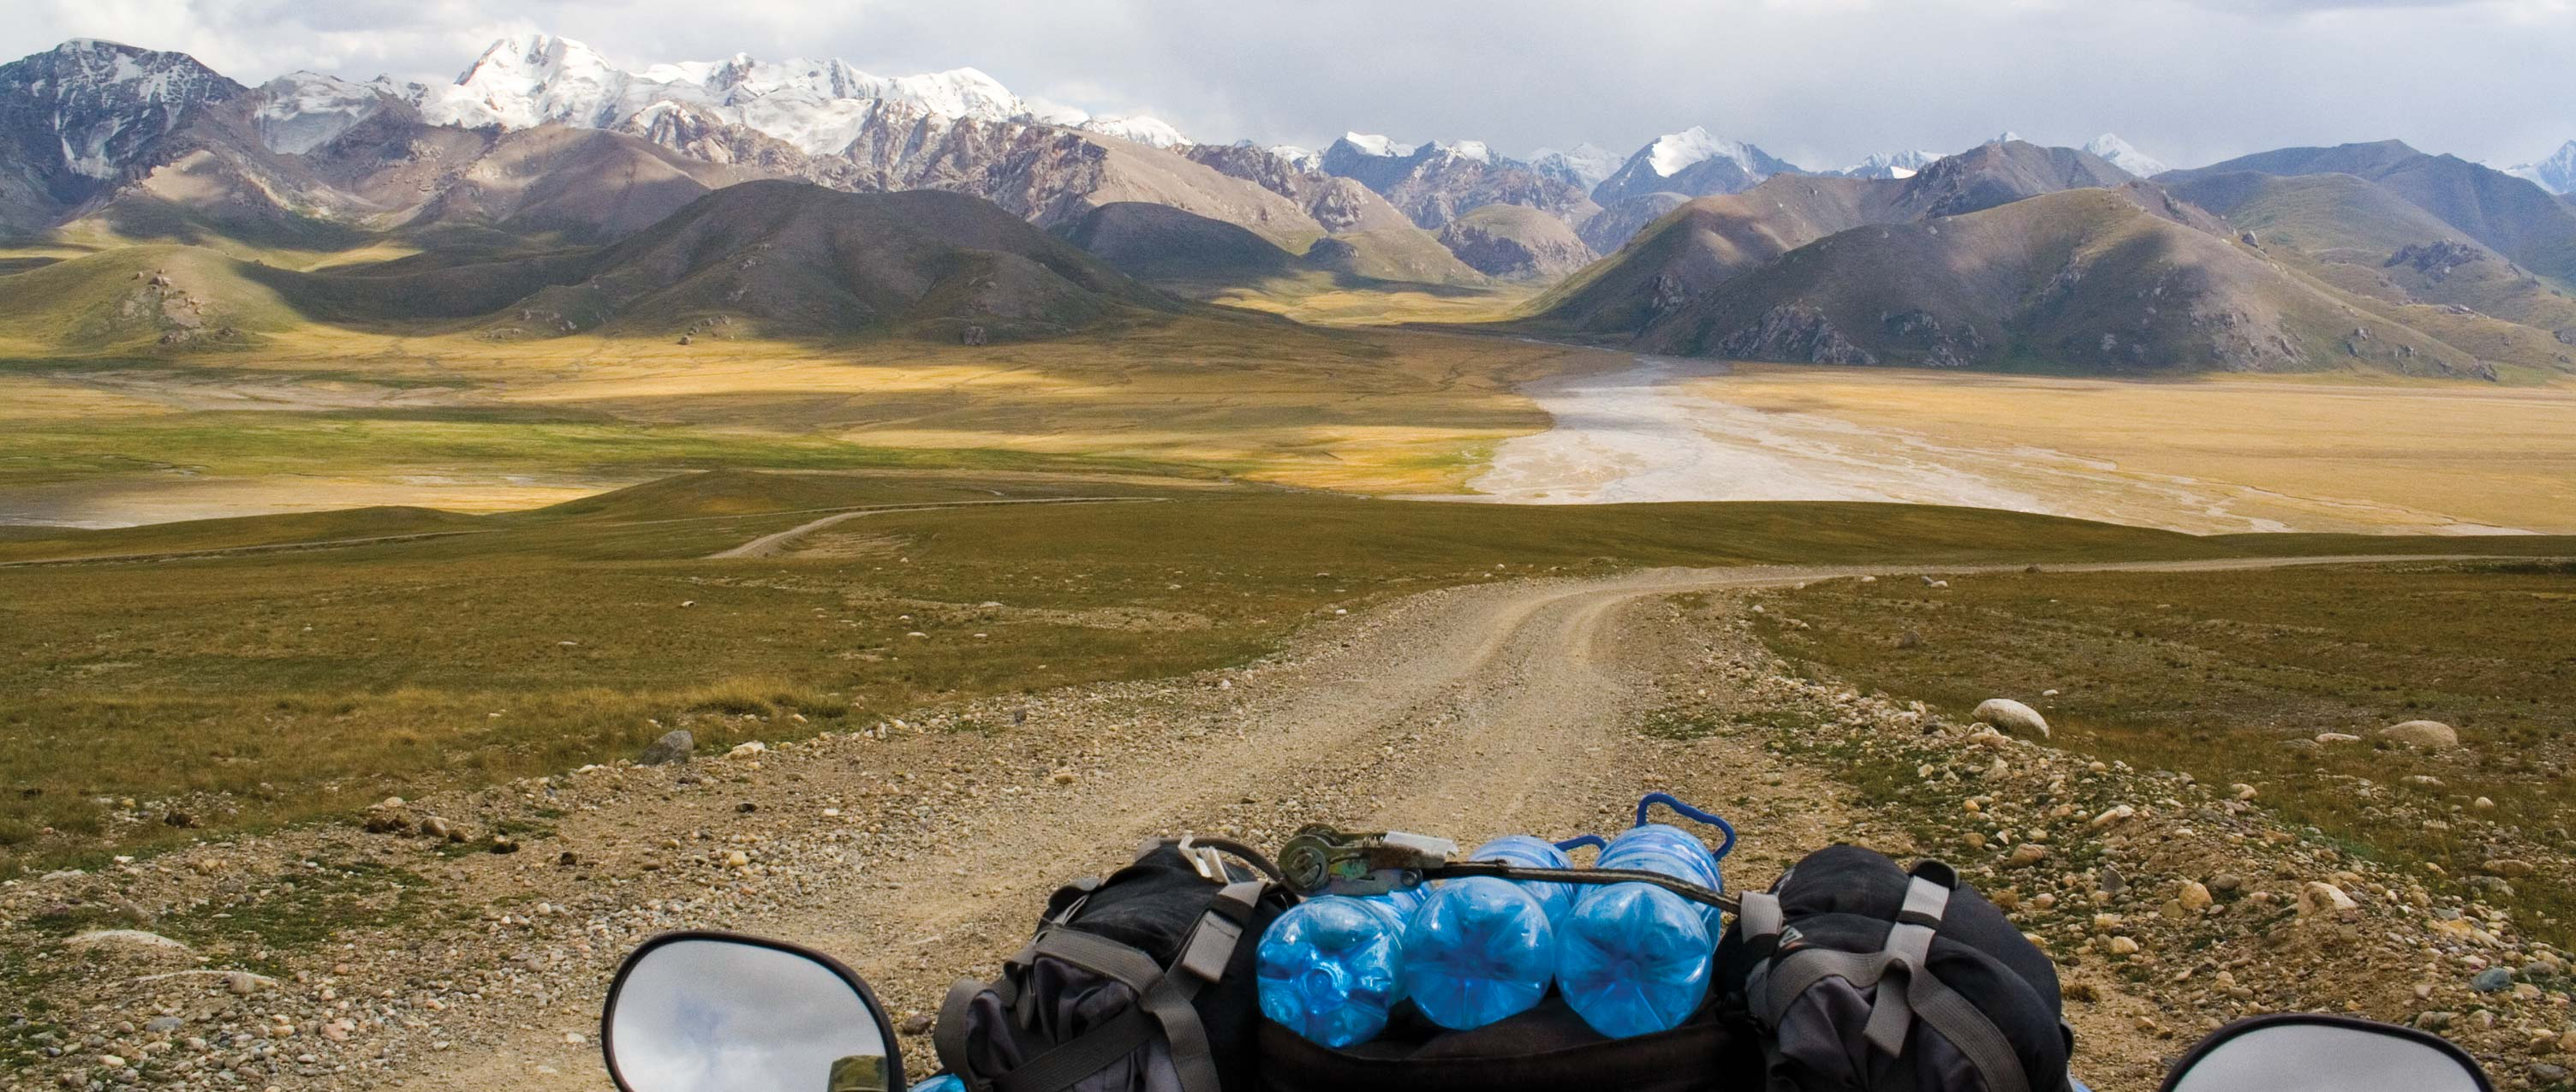 Off-road ATV tour - Motorcycle tour from Kirgistan in the Taklamakan desert